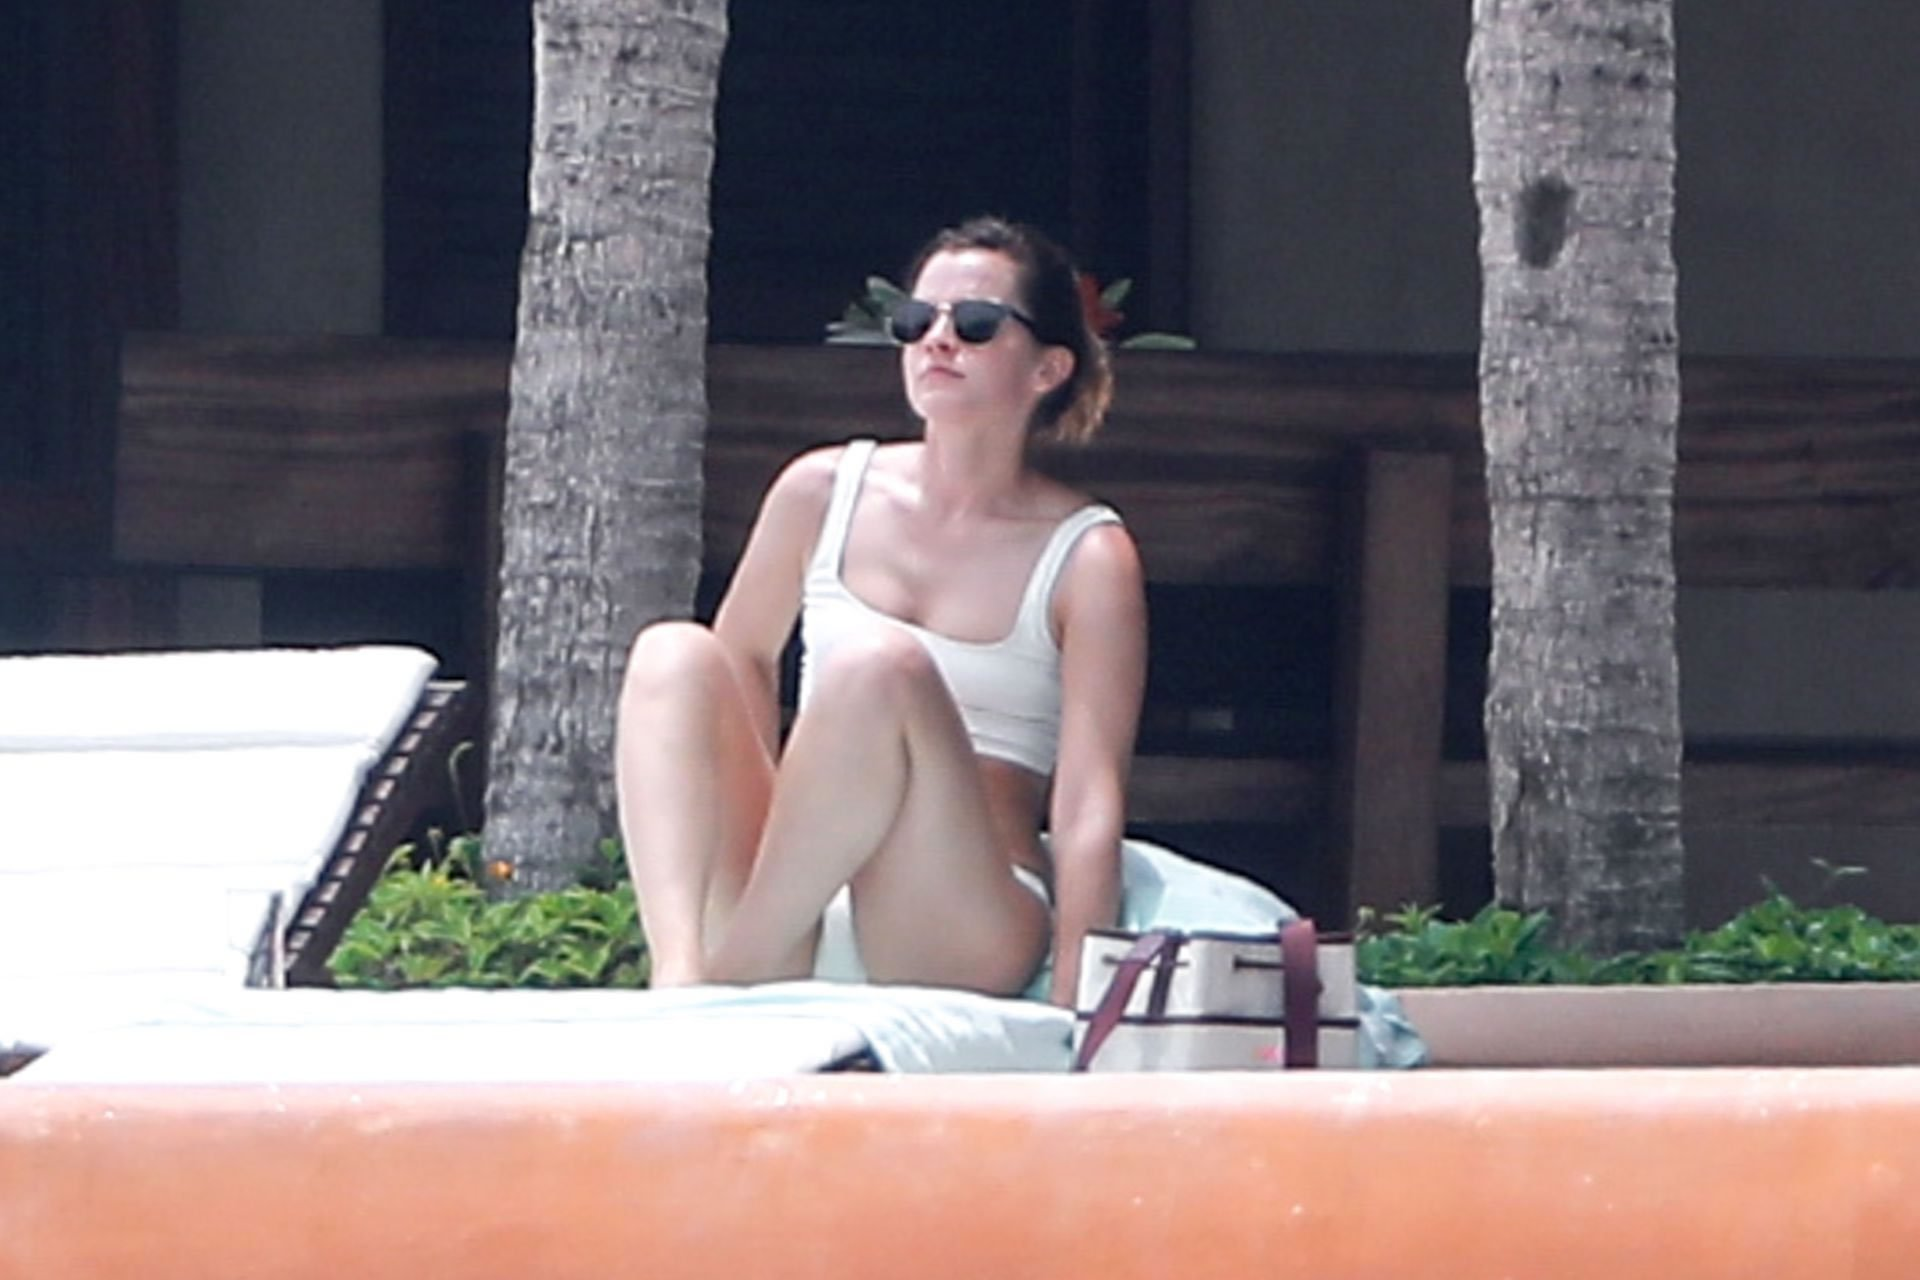 More Than 30 Photos Of Harry Potter Girl Emma Watson Caught In Bikini